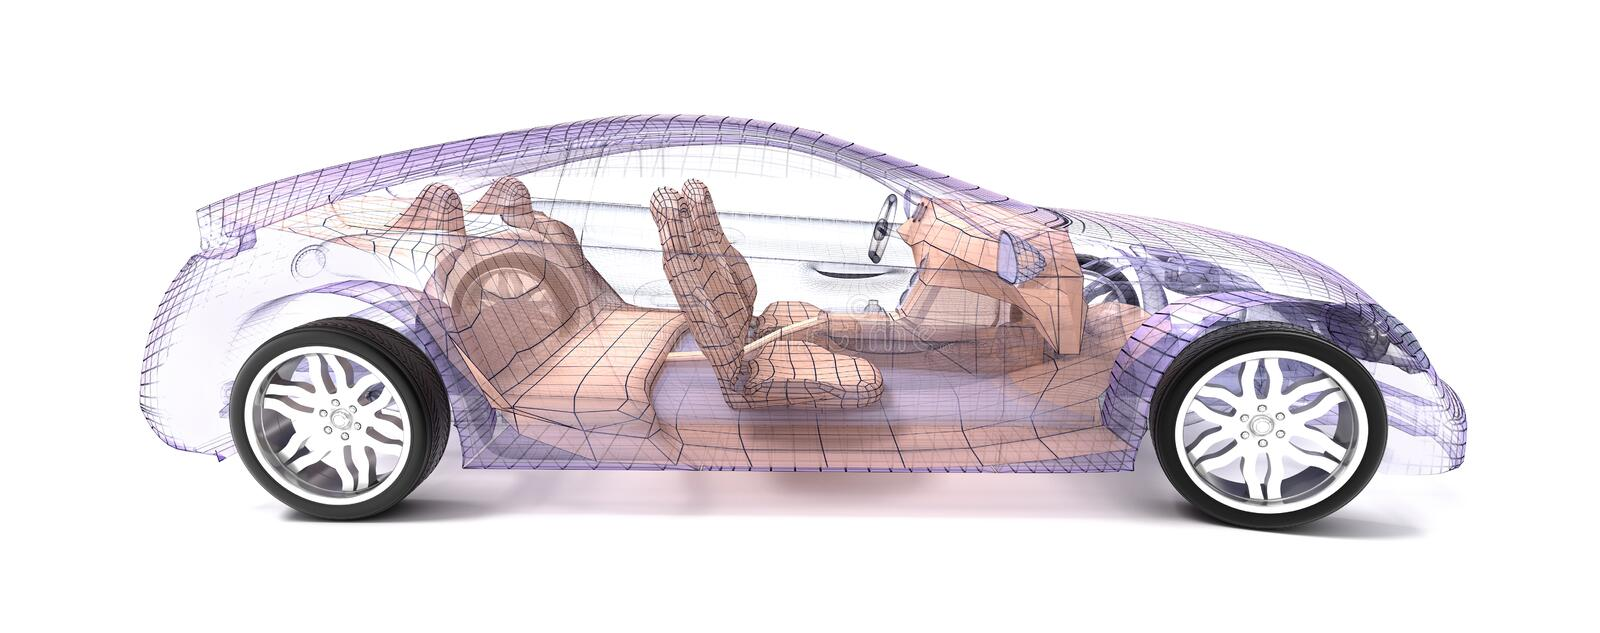 Car design, wire model. vector illustration